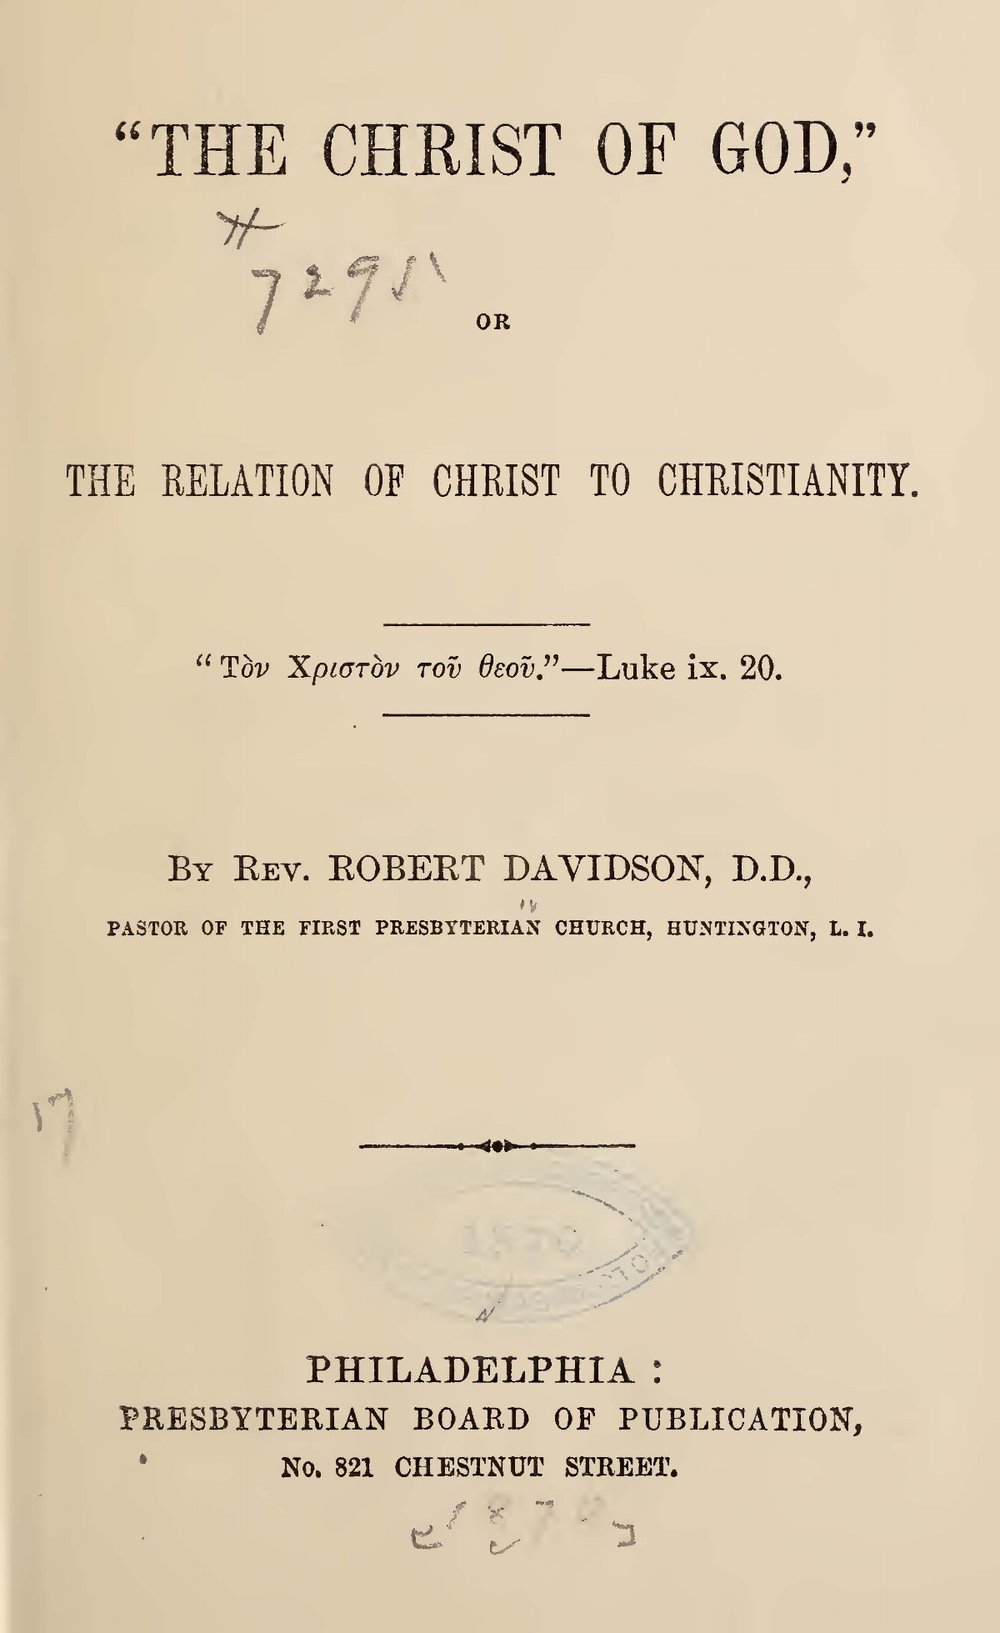 Davidson, Robert, The Christ of God, or, The Relation of Christ to Christianity Title Page.jpg